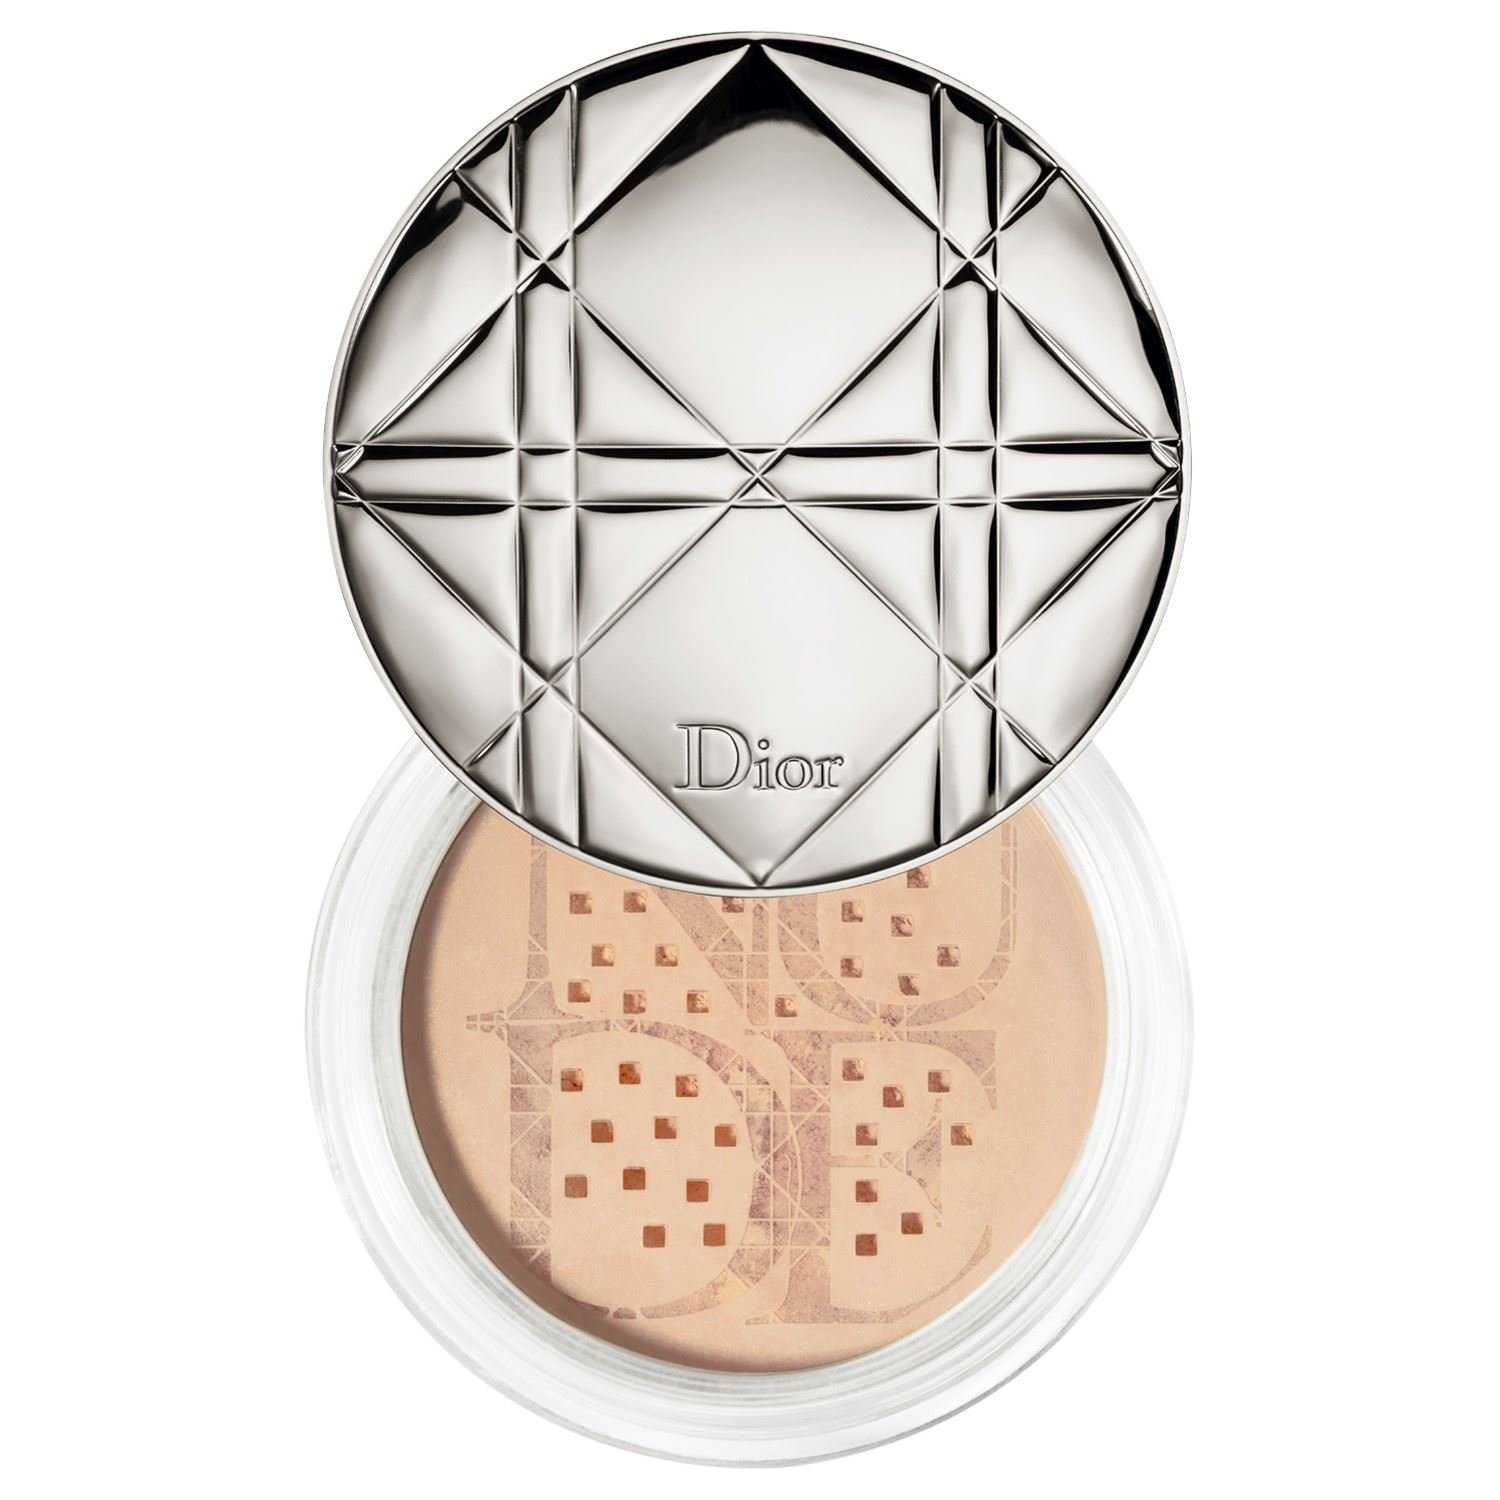 Dior Diorskin Nude Air Healthy Glow Invisible Loose Powder 020 Light Beige